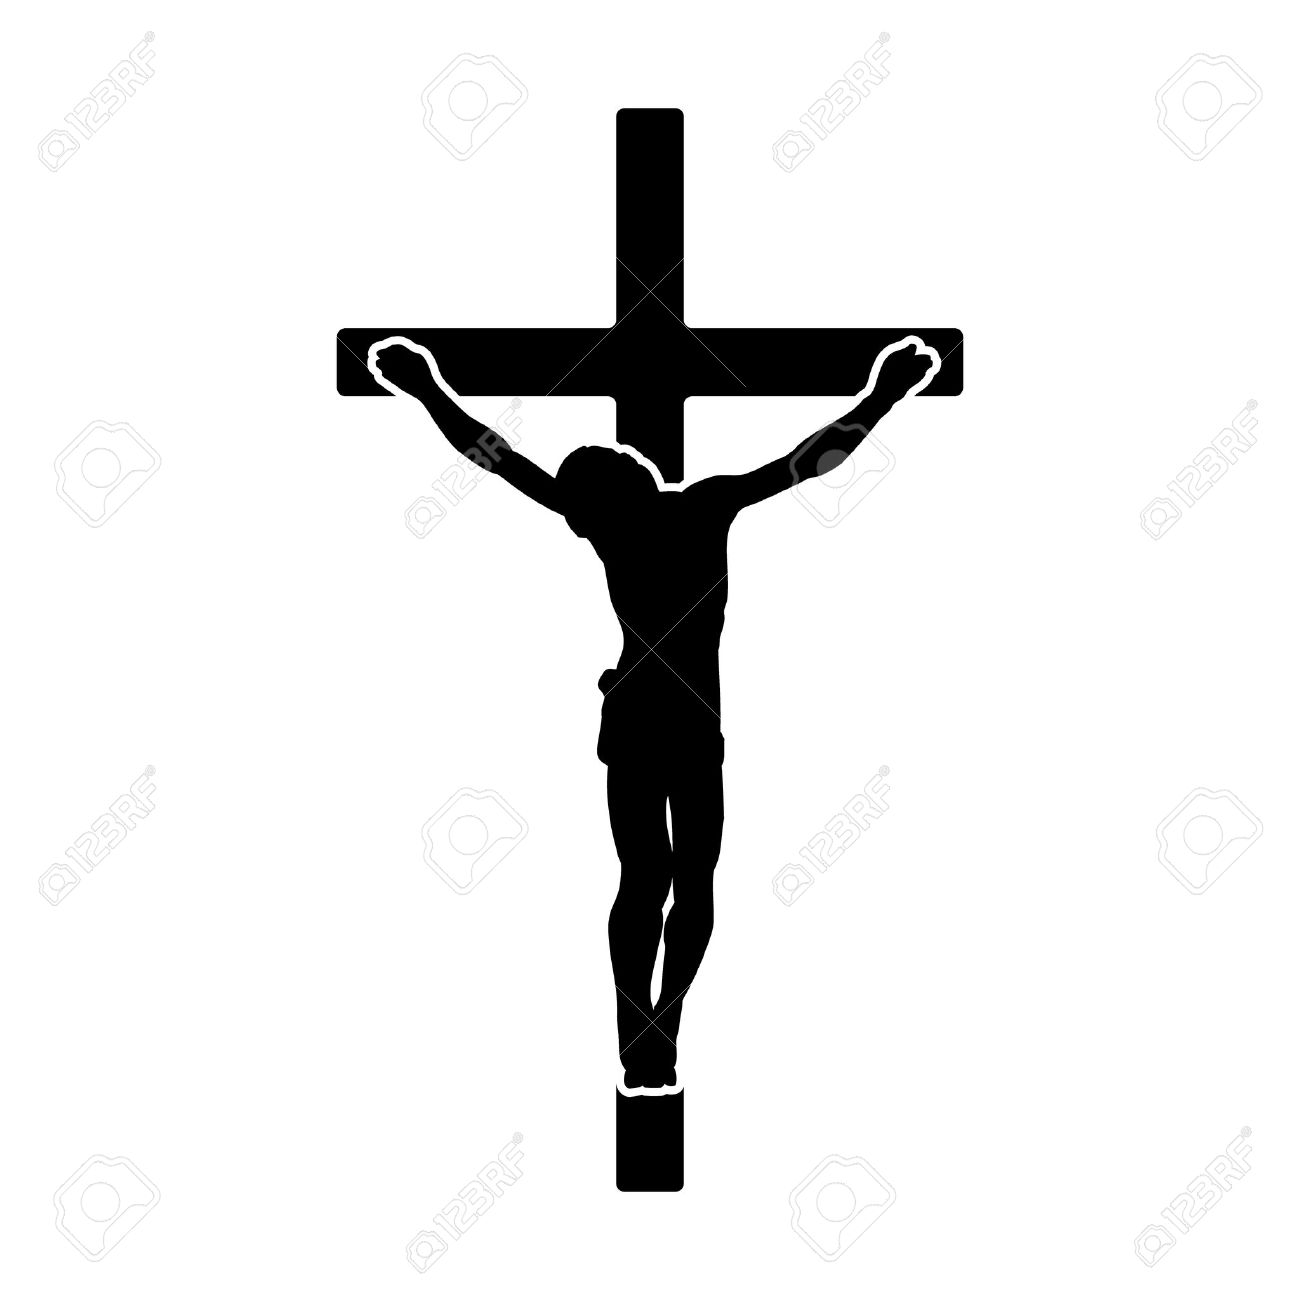 Crucifix crucifixion of Jesus Christ flat icon for religious apps and websites - 50764724